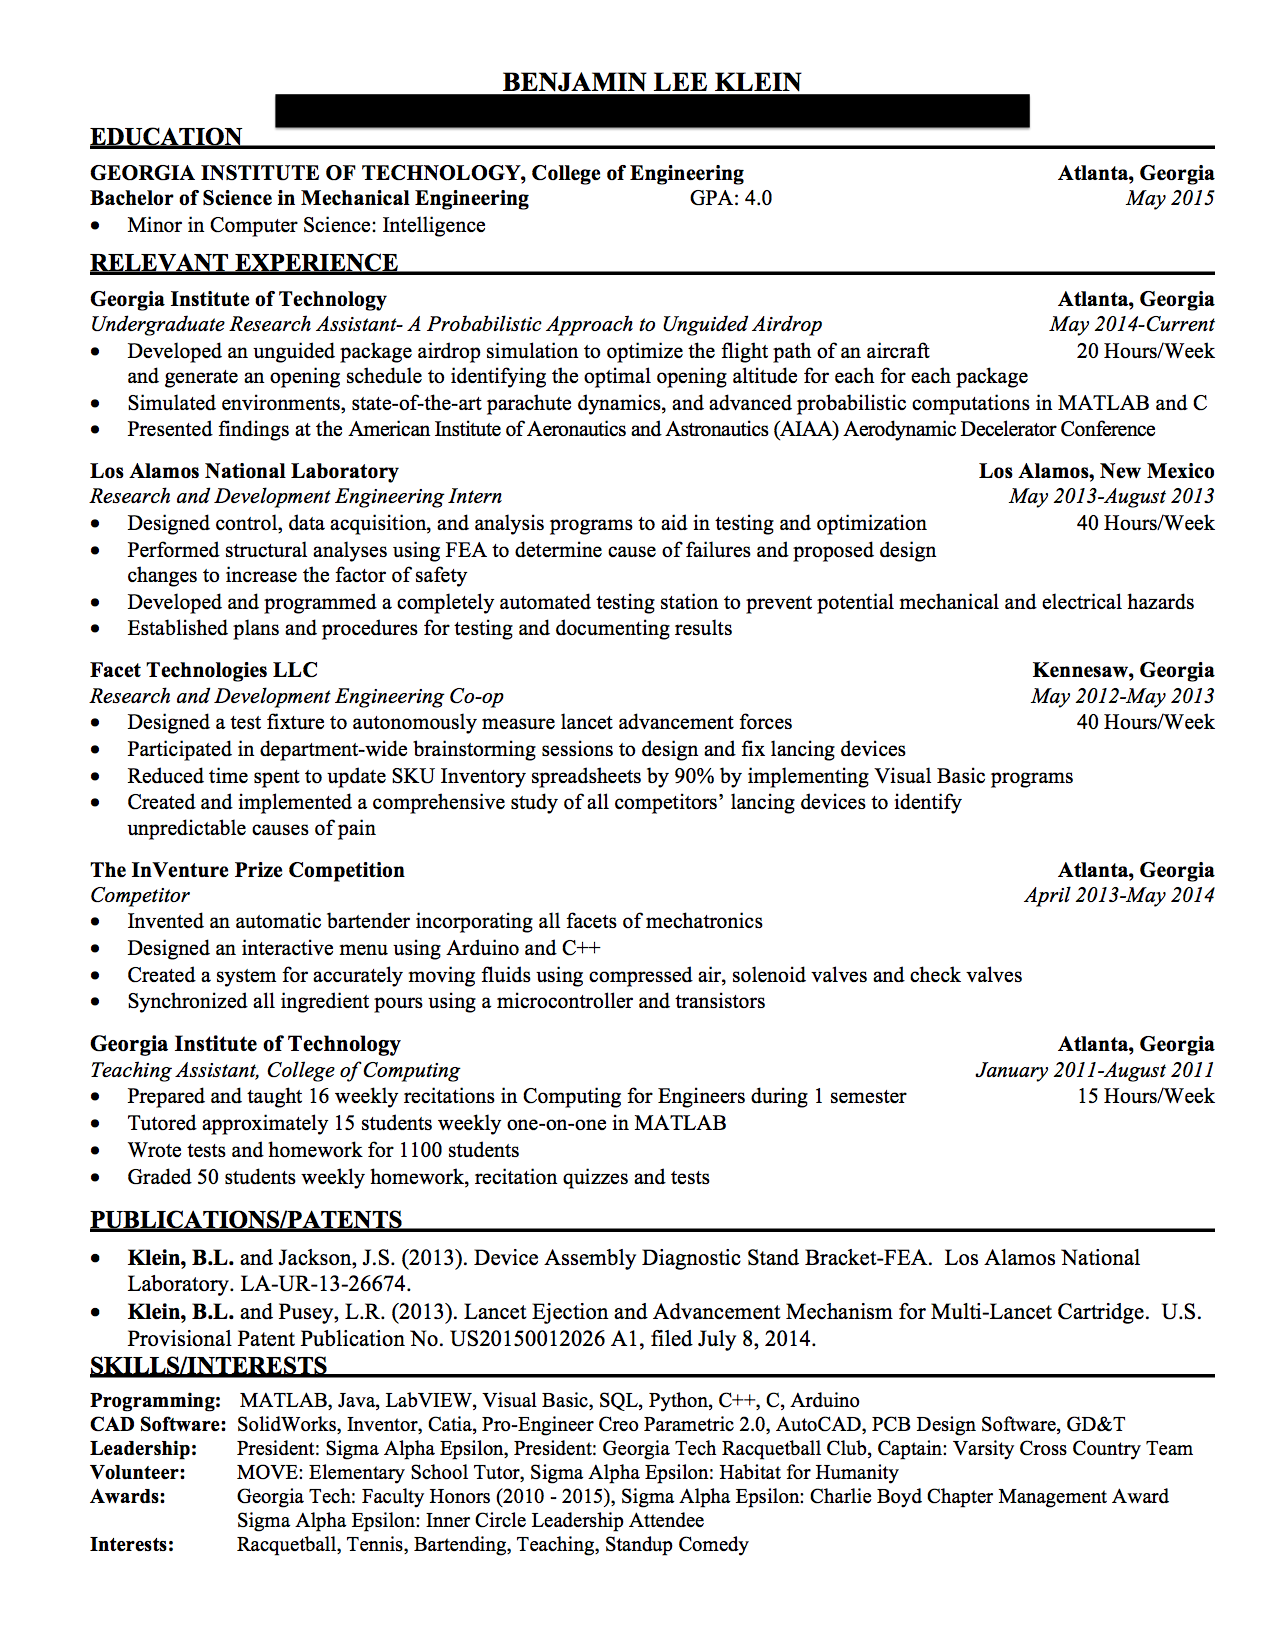 Resume After College Resume Now Cost Teacher Edit Careerbuilder What Will Get You Job